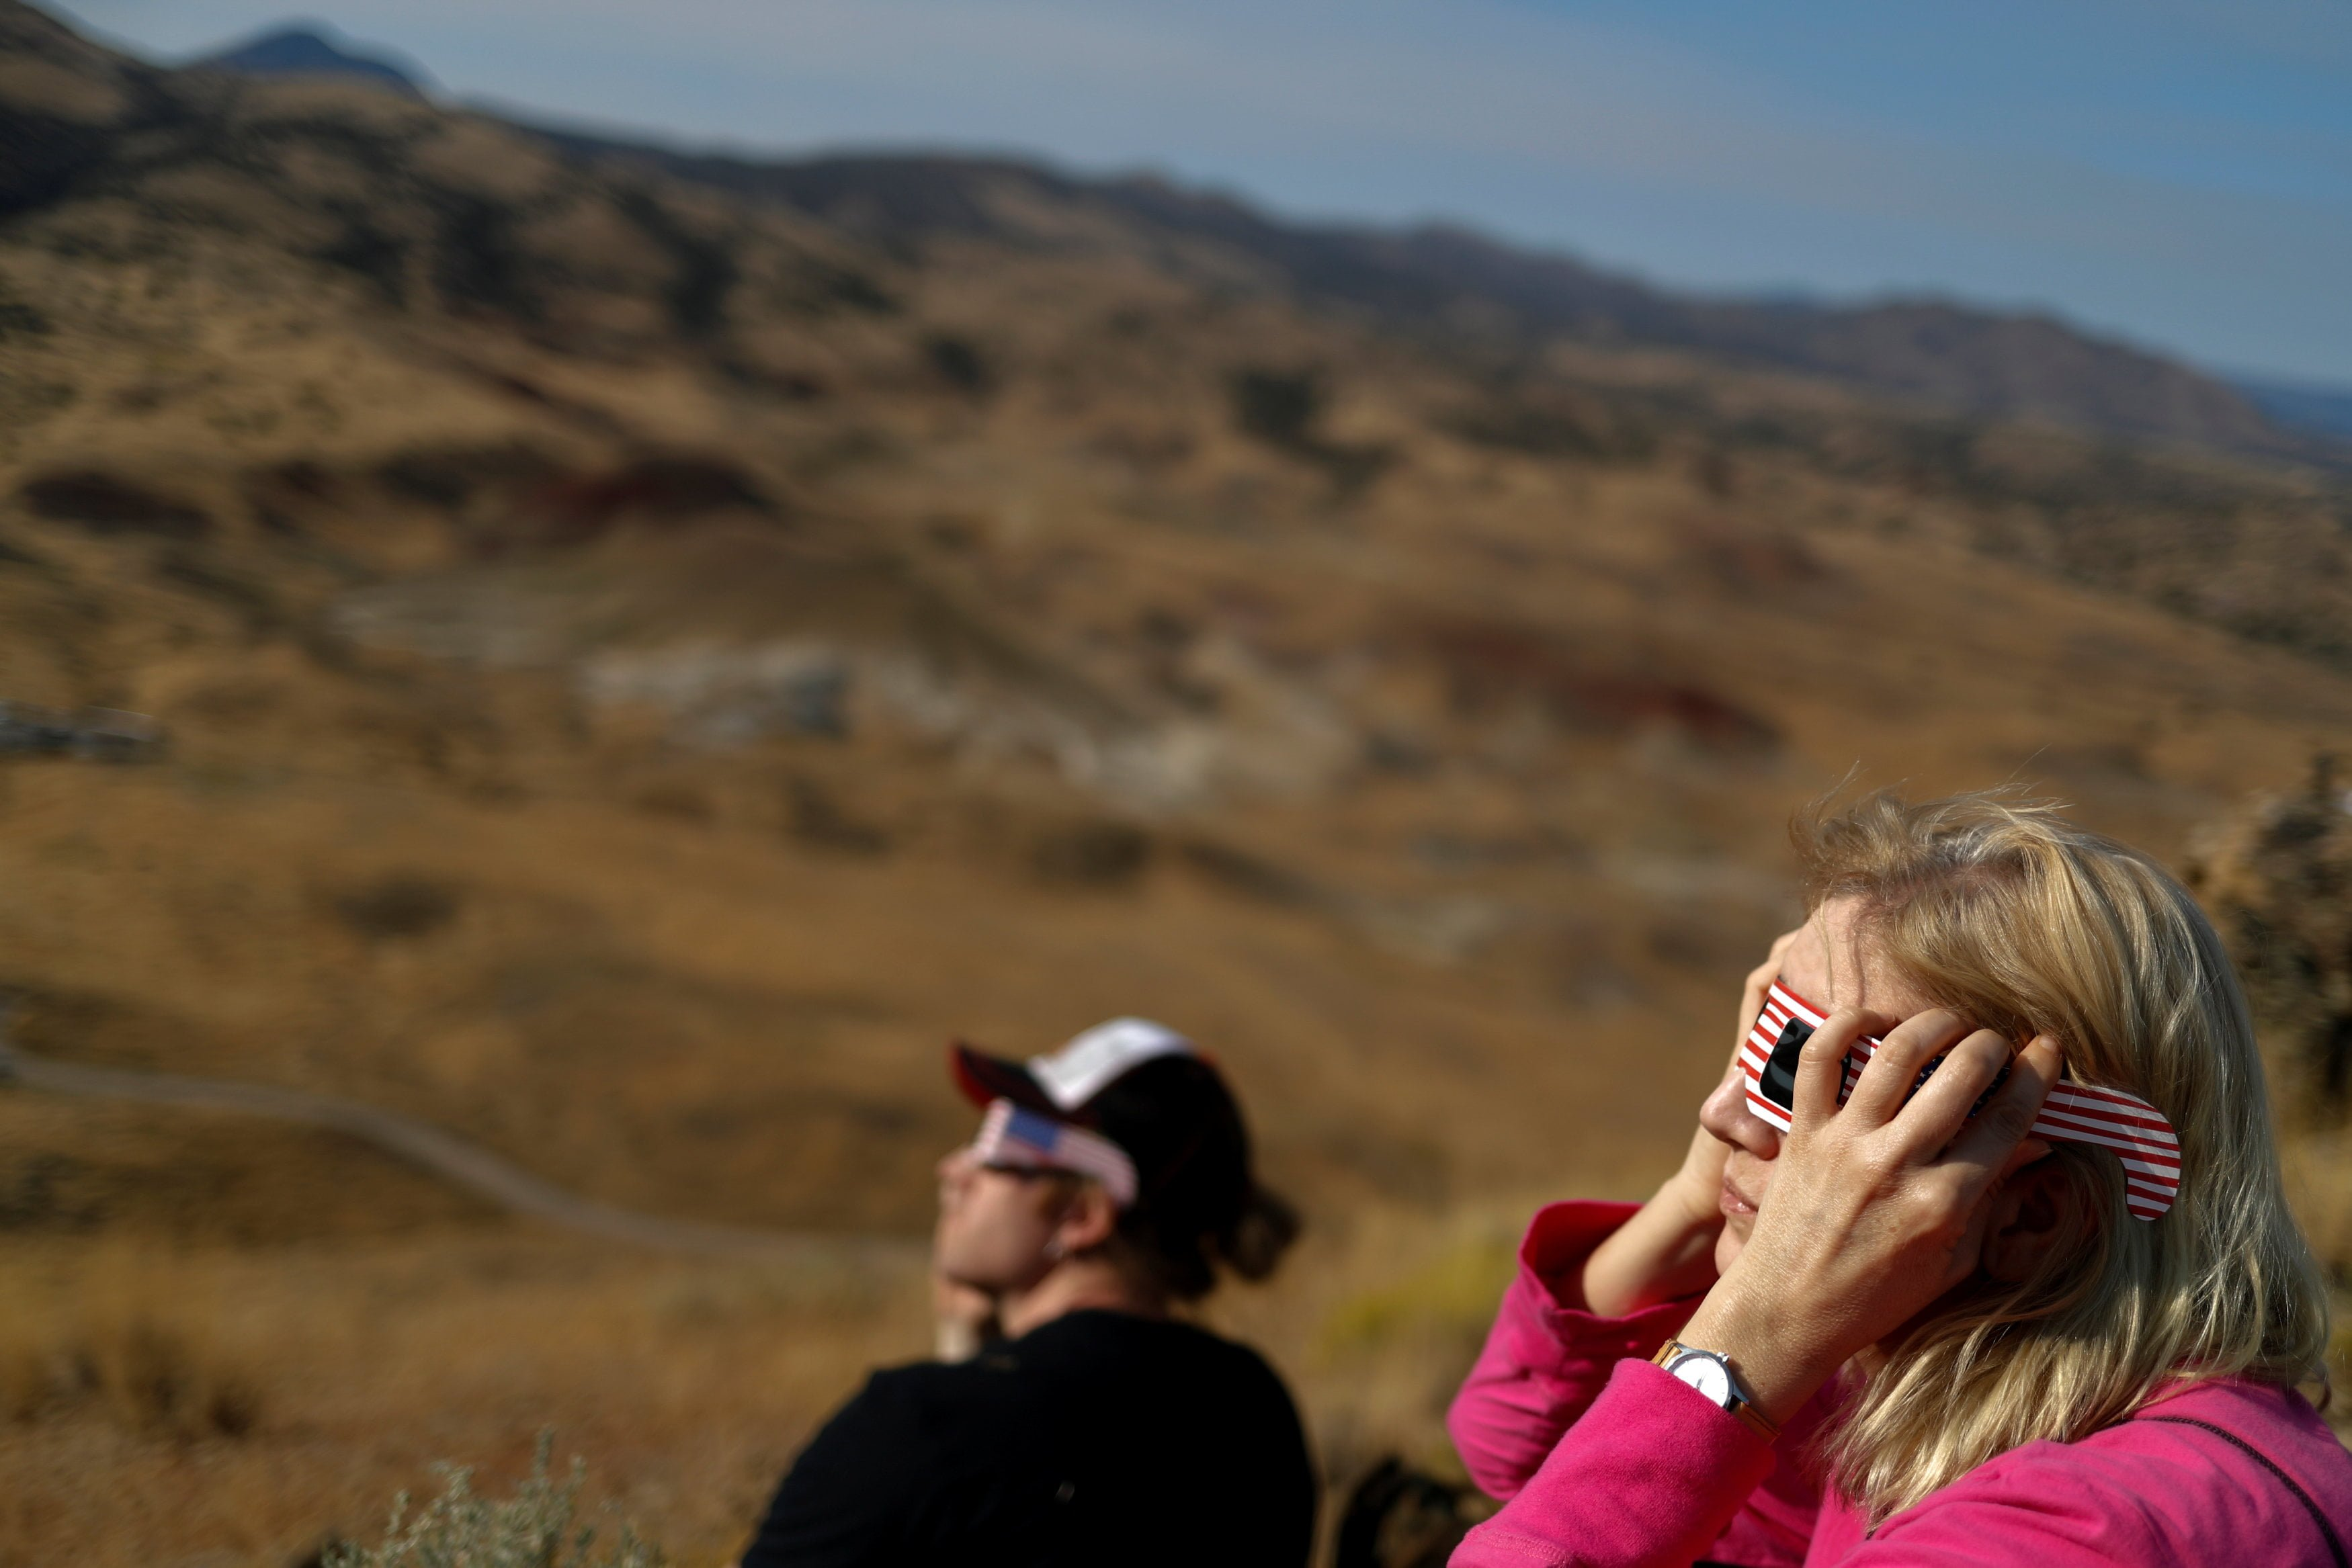 Enthusiasts watches a solar eclipse before it's totality from atop Carroll Rim Trail at Painted Hills near Mitchell, Oregon